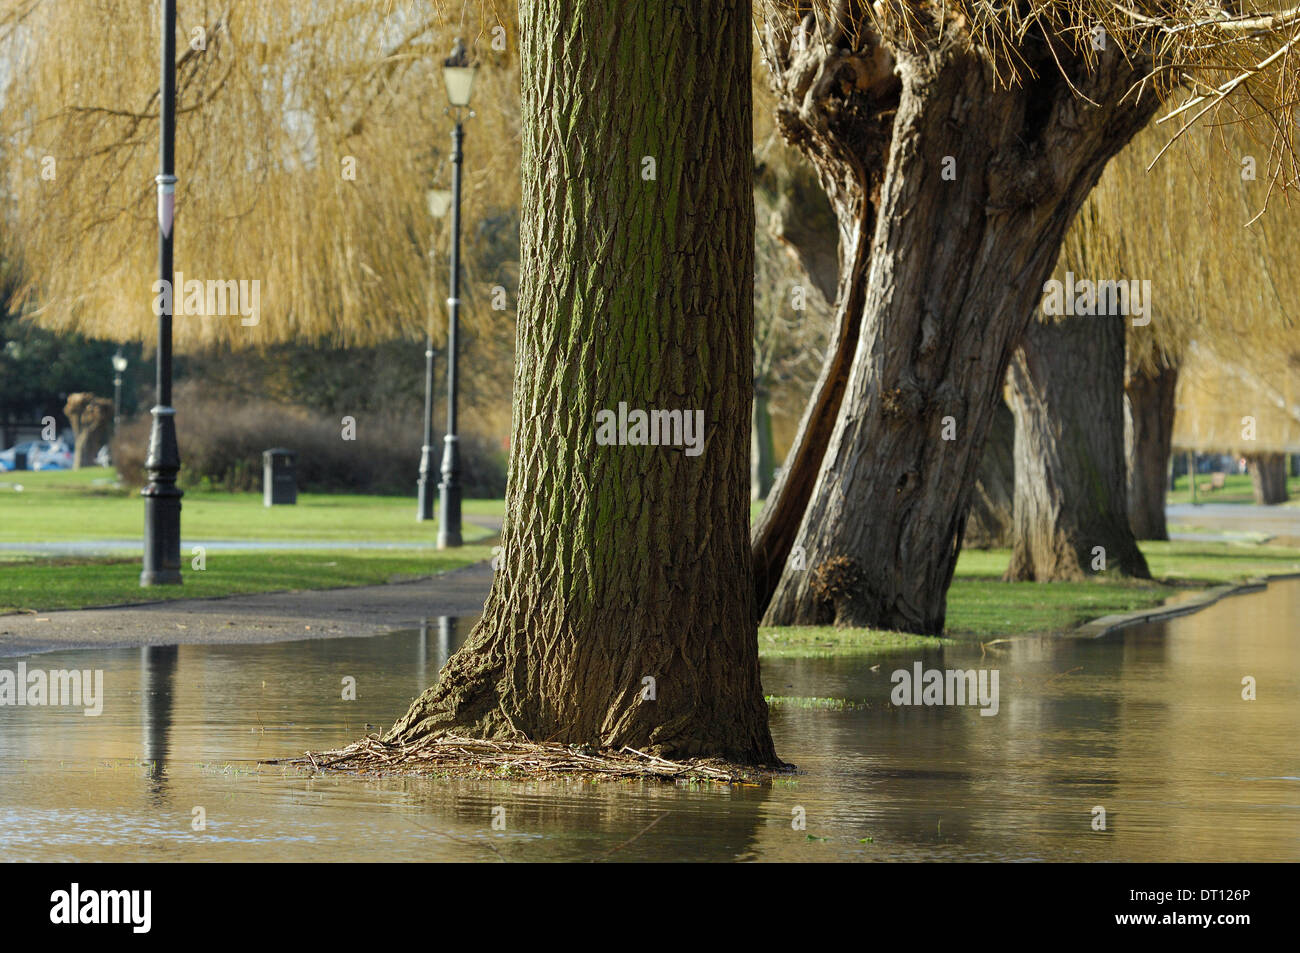 Rising floodwater by River Great Ouse, Bedford, UK Stock Photo